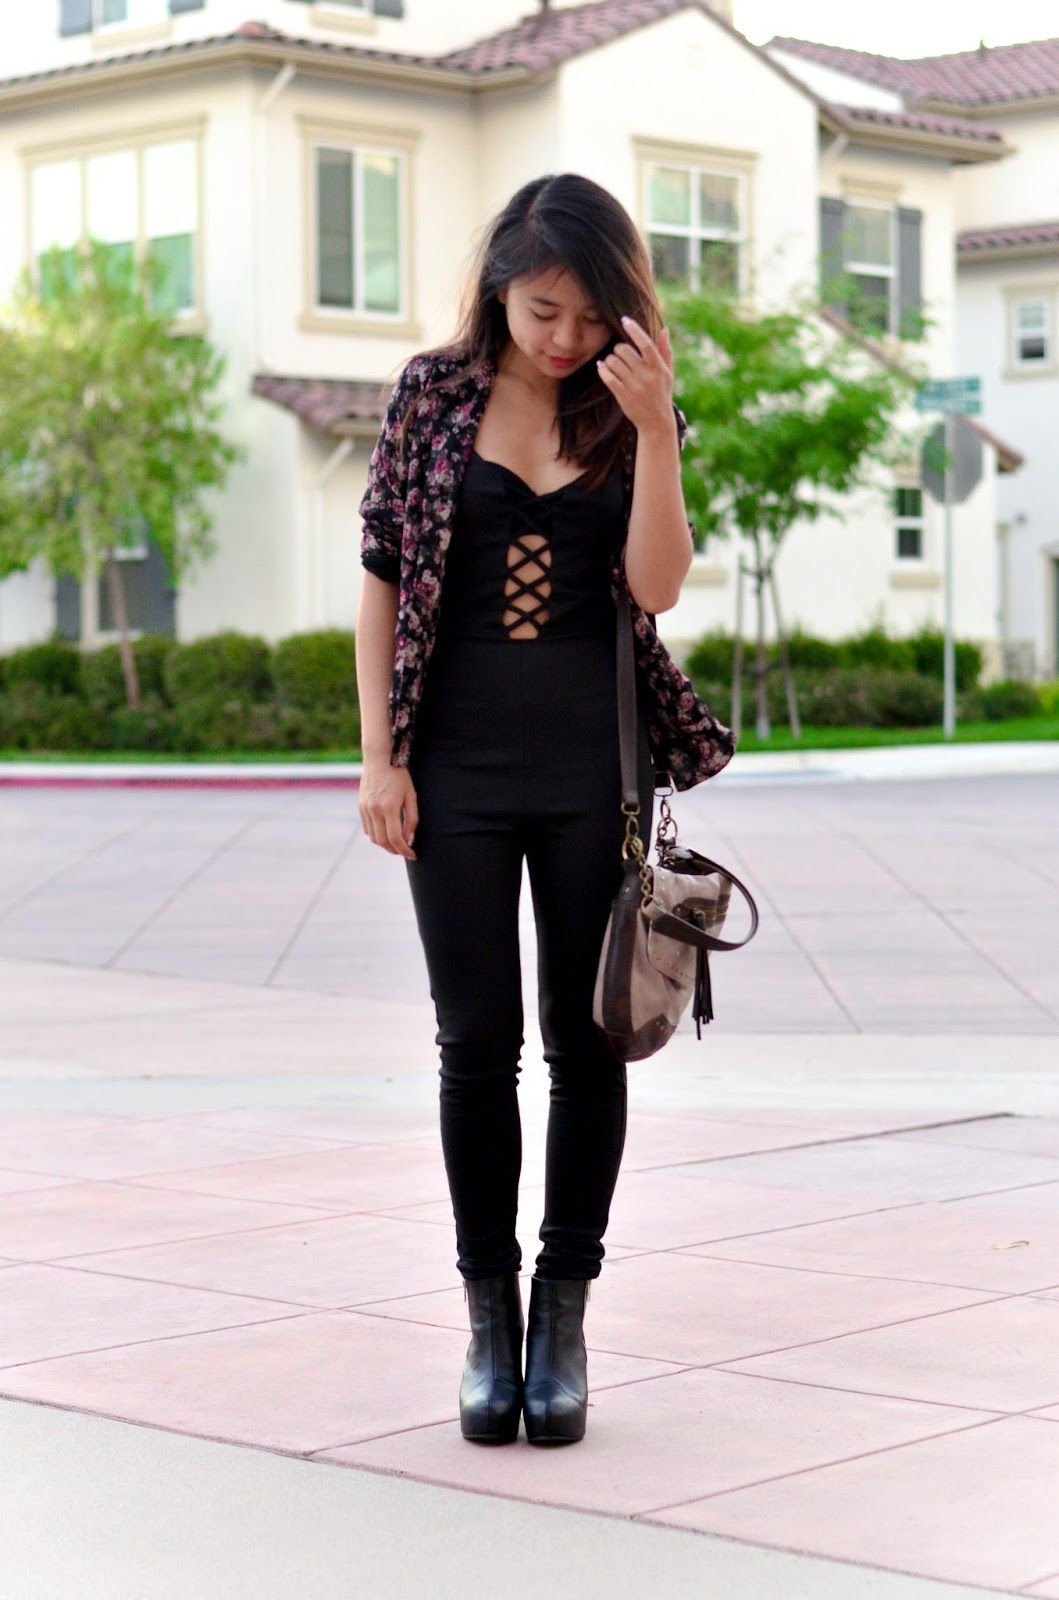 d5a4373a4e17 A black floral jacket and a black jumpsuit are a great outfit formula to  have in